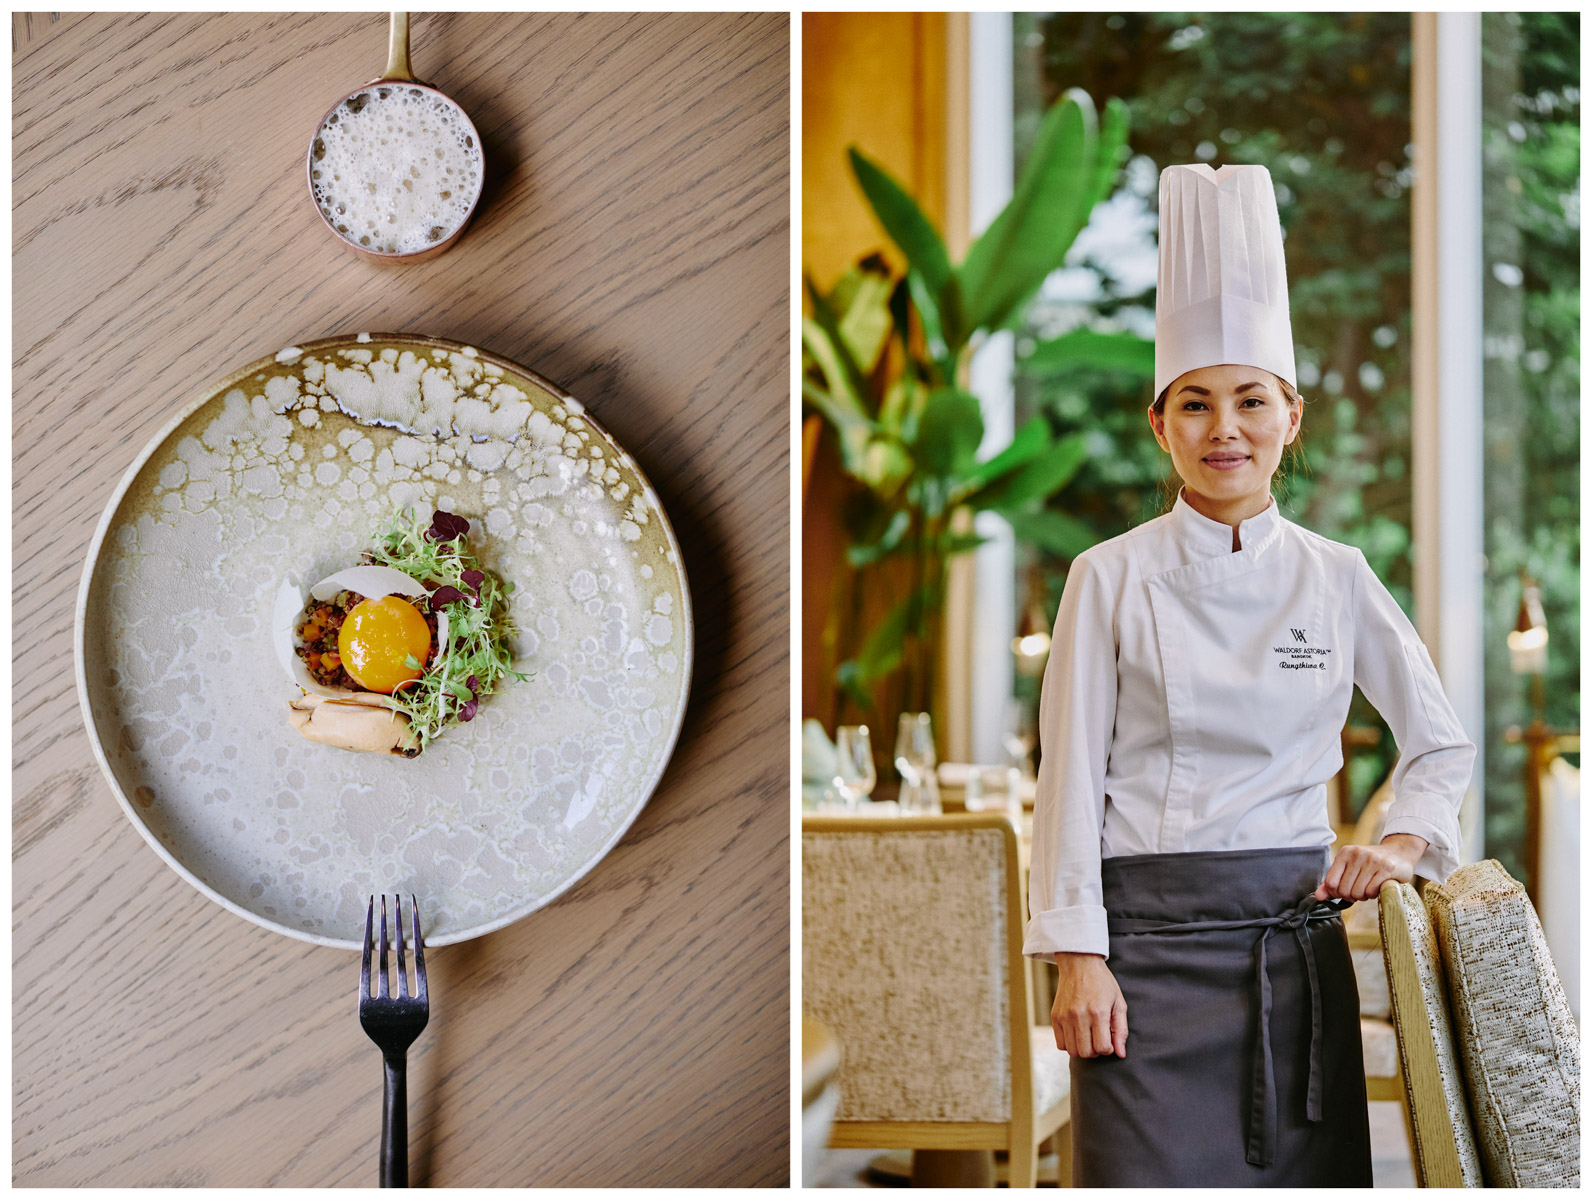 A portrait of chef Rungthiwa {quote}Fay{quote} Chummongkhon and her dish with mussels and egg yolk at The Front Room in Bangkok, Thailand.